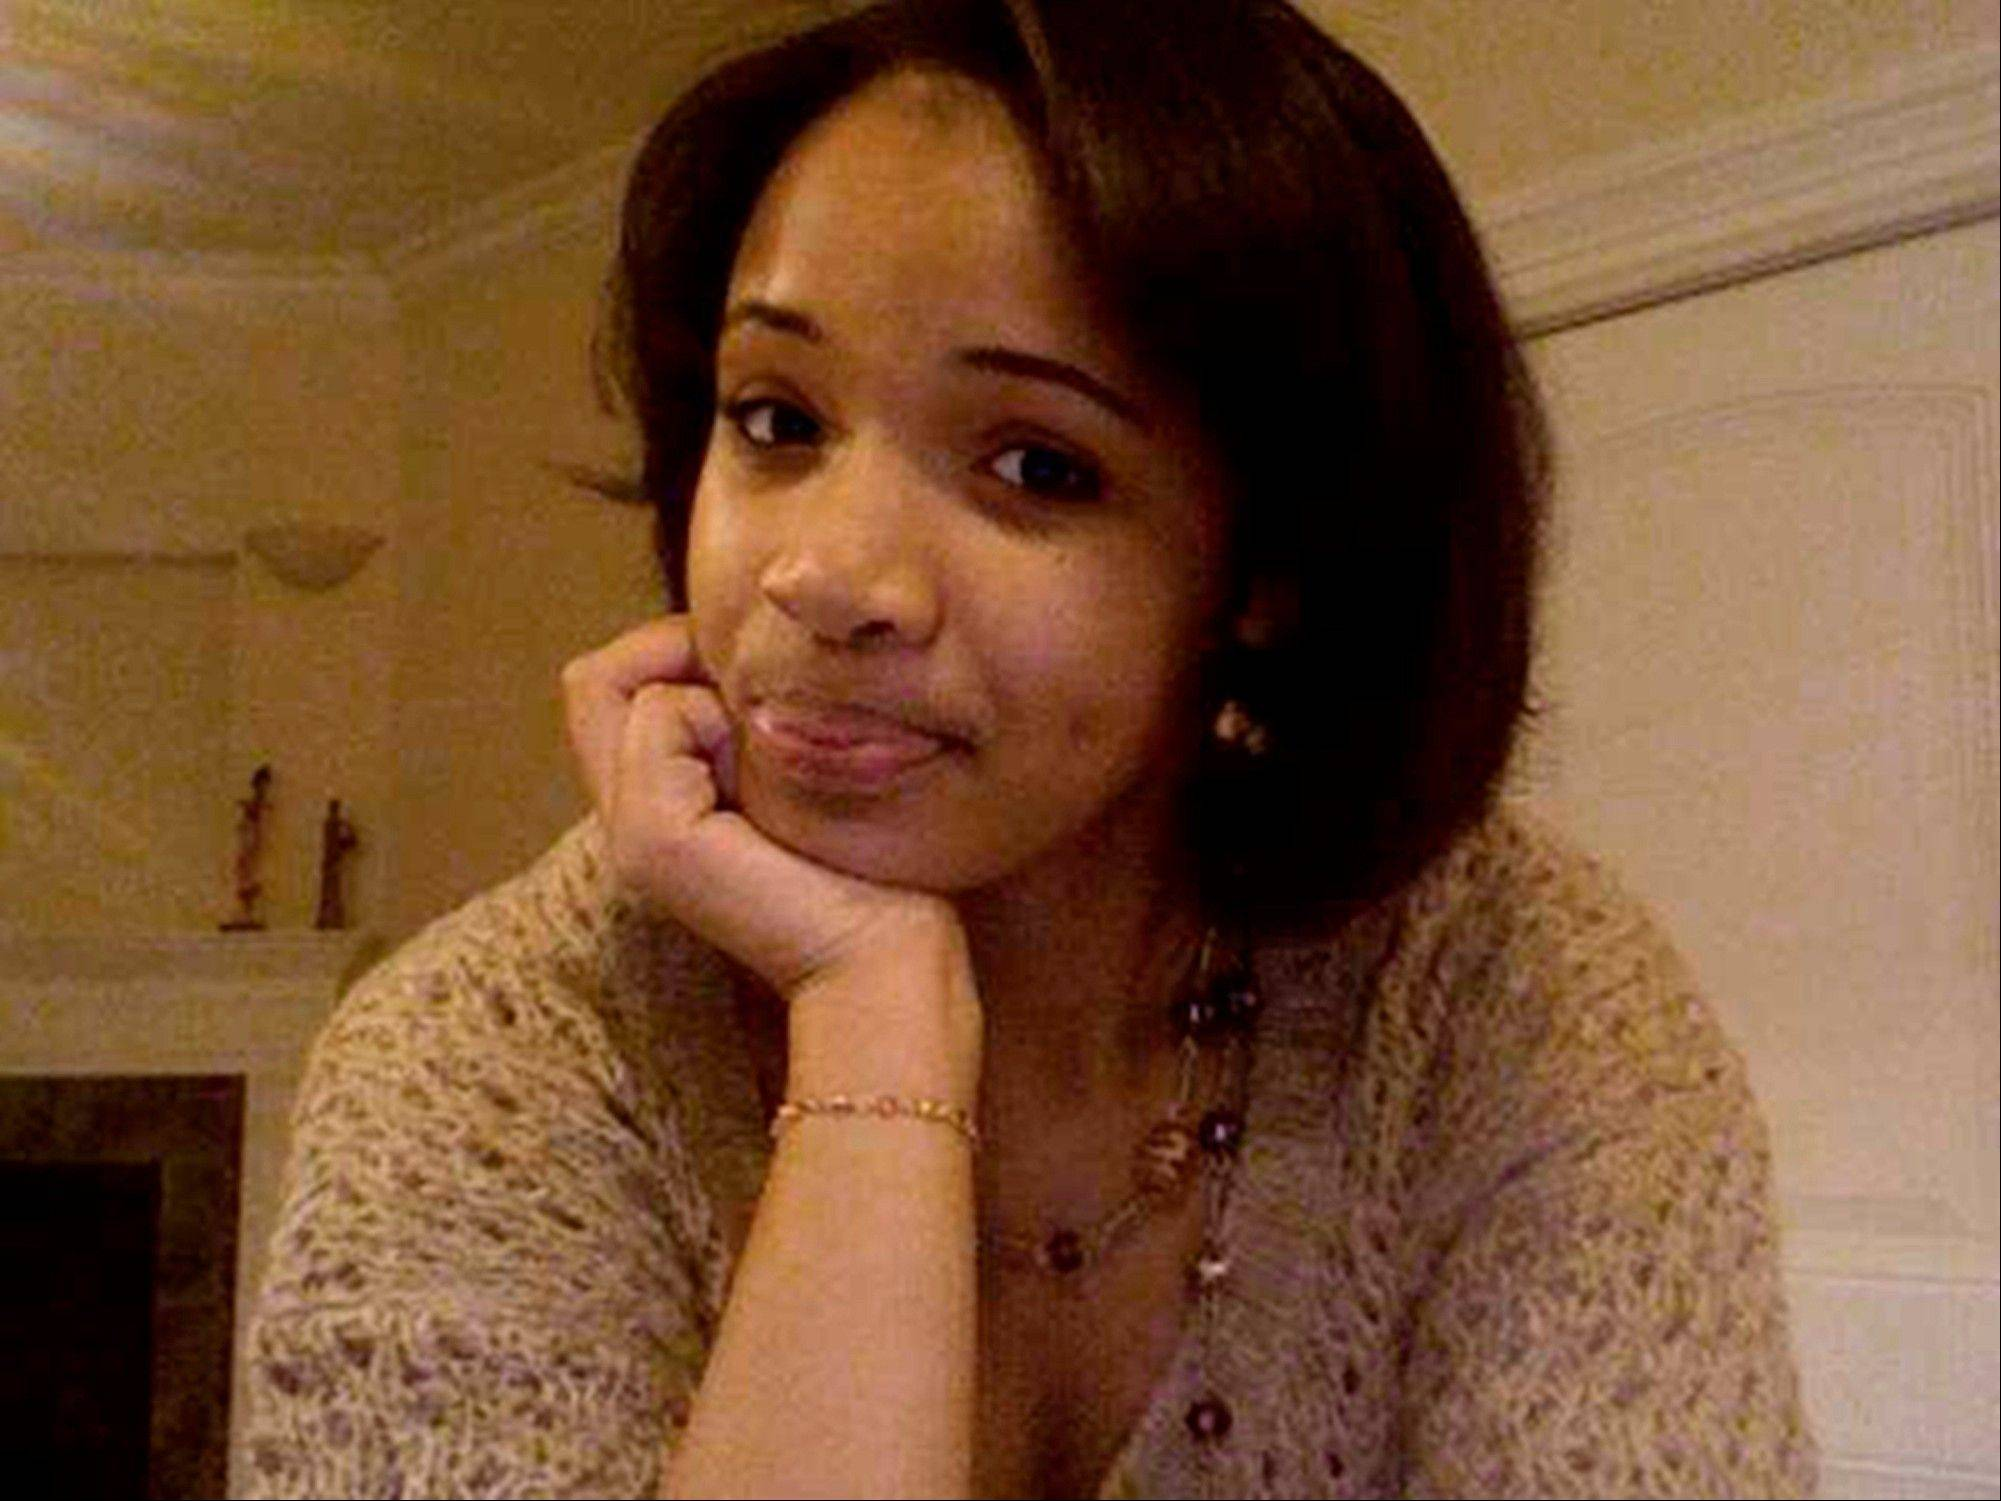 Hadiya Pendleton, 15, of Chicago was shot and killed Tuesday.